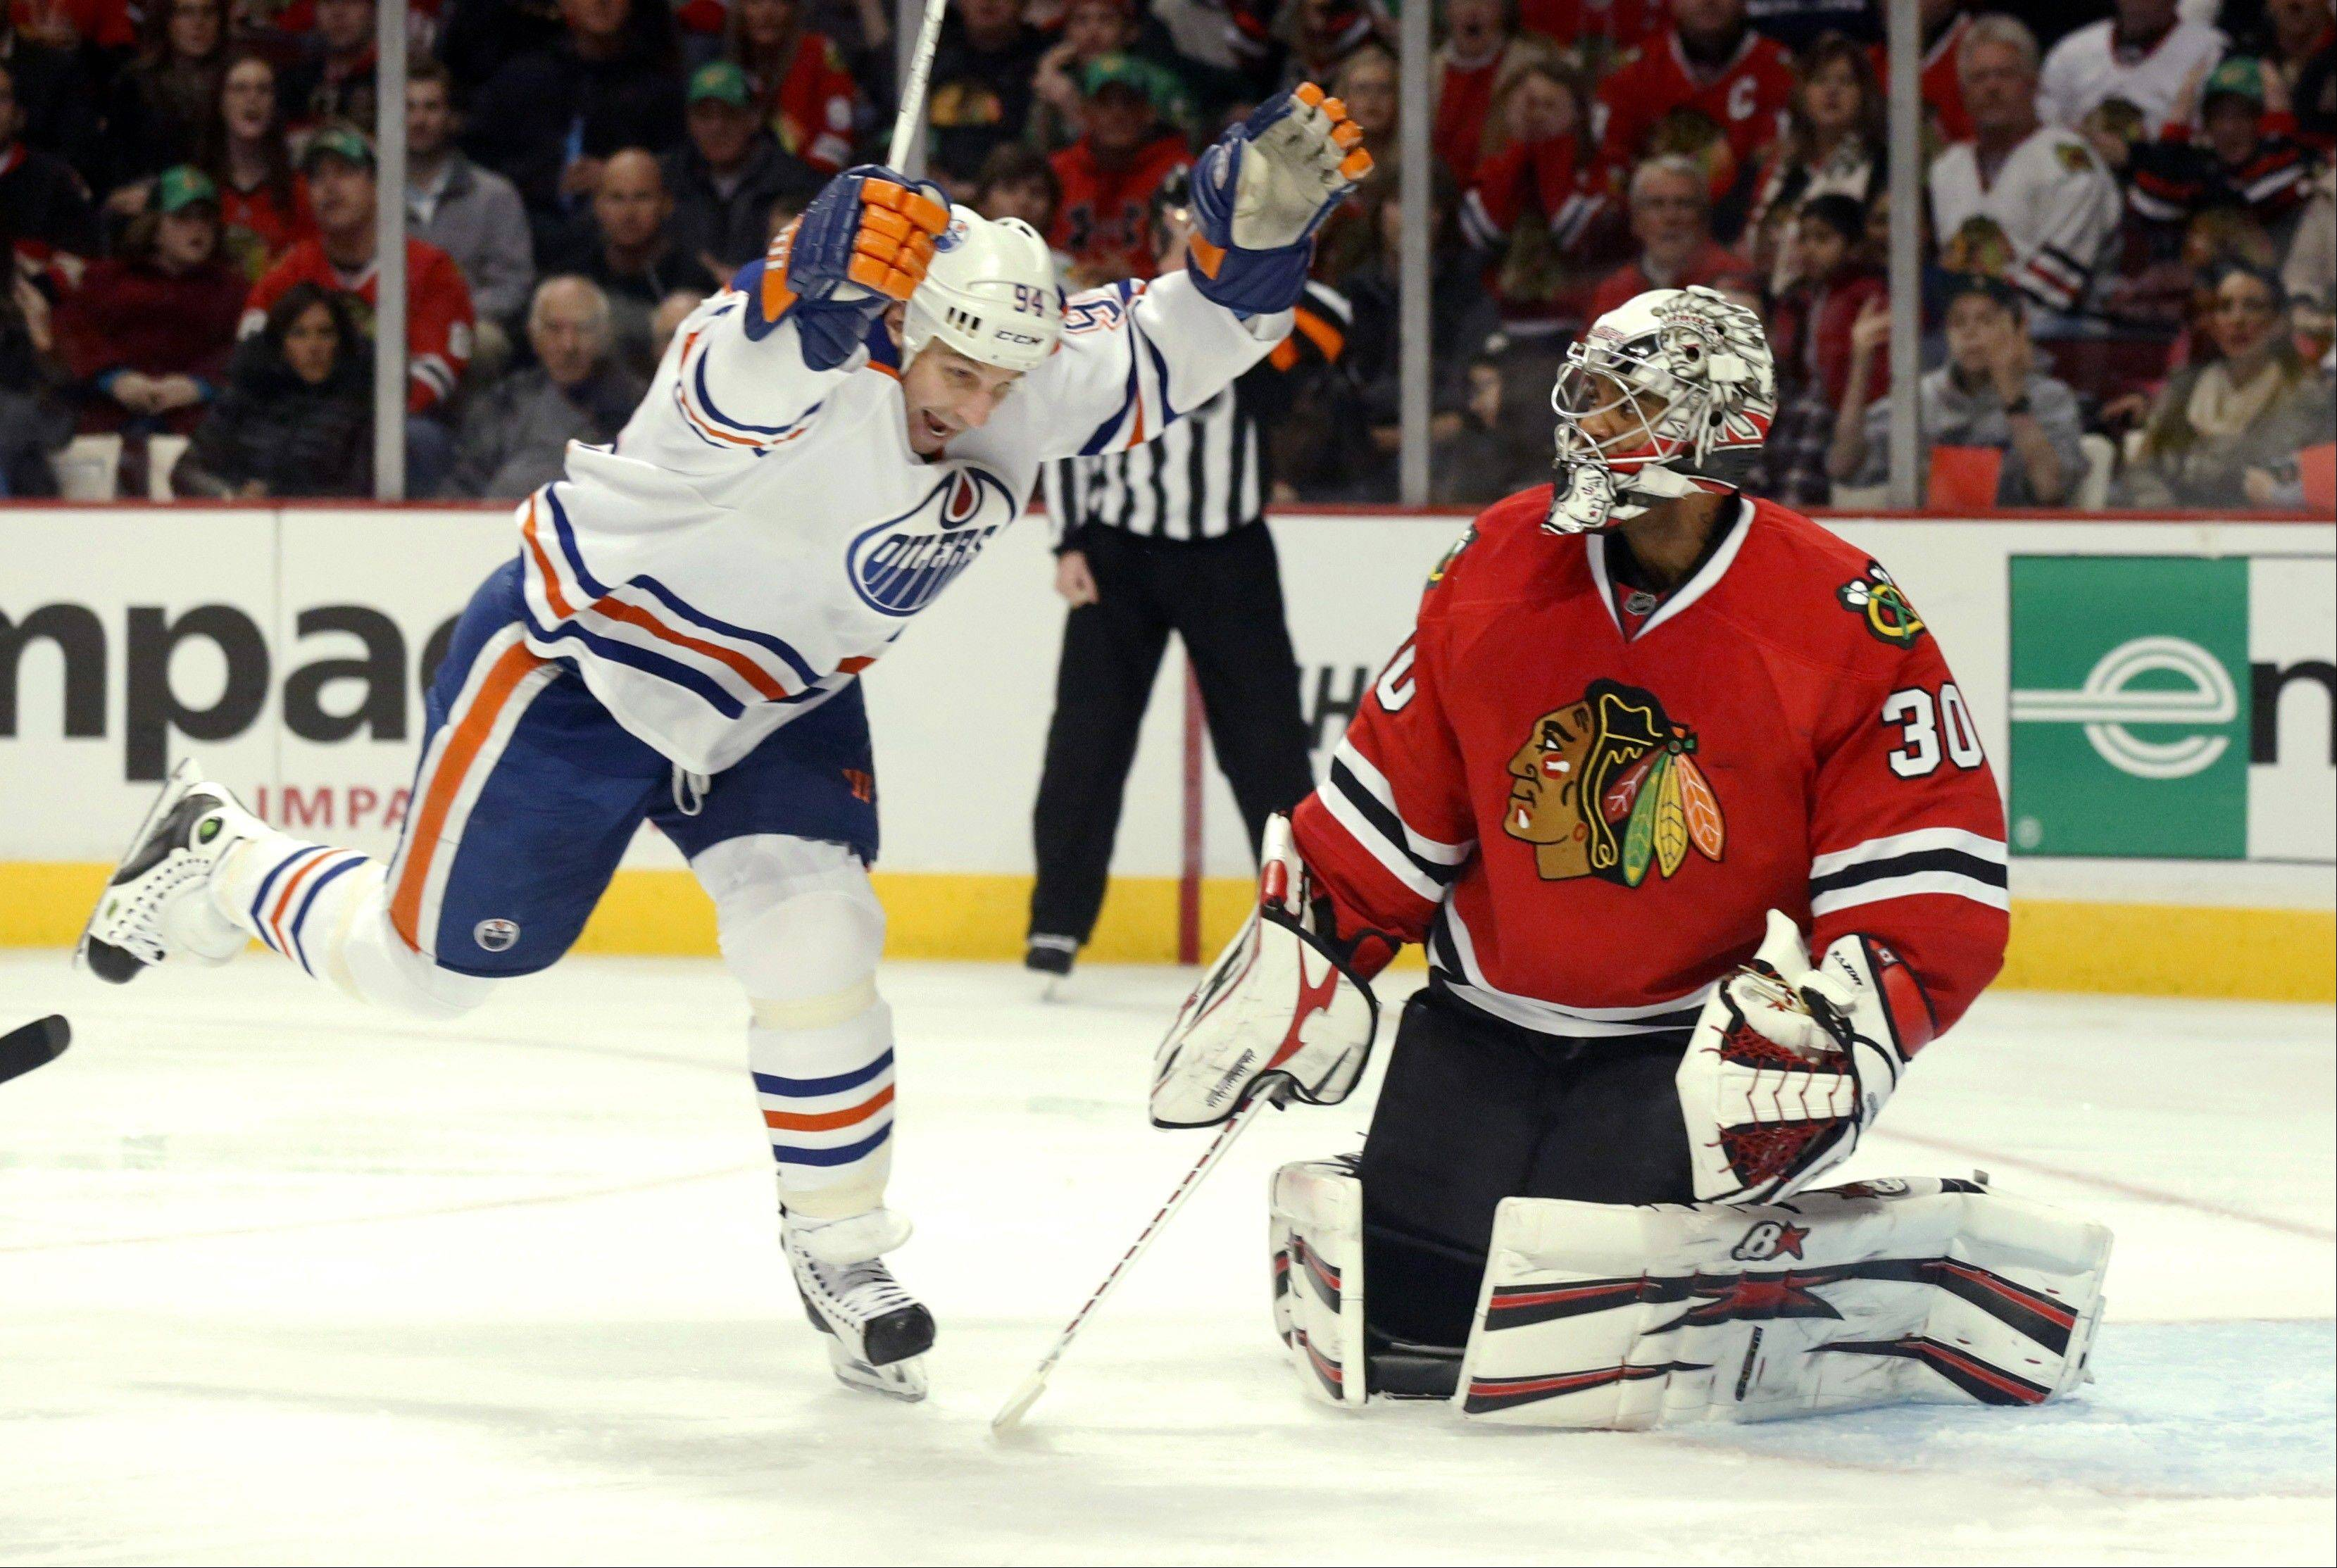 ASSOCIATED PRESS Chicago Blackhawks goalie Ray Emery (30) watches as Edmonton Oilers left wing Ryan Smyth (94) celebrates teammate Mike Brown's goal during the first period.